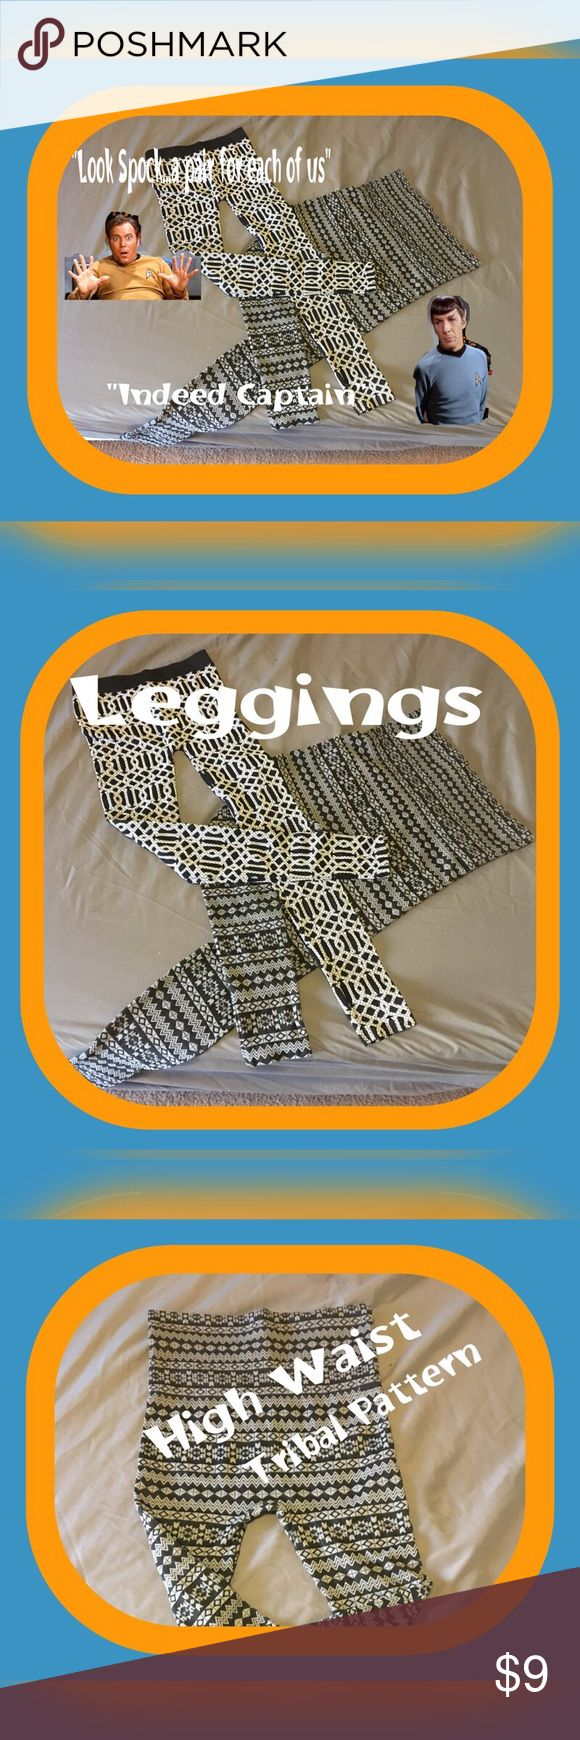 💥💥 BOGO SALE 💥💥 $10 & Under items only 💋💋LEGGINGS LEGGINGS LEGGINGS 💋💋 2 pairs of LEGGINGS for 1 LOW PRICE.  Both are OSFM.  Both are have patterns.                           💥💥Don't Forget to BOGO 💥💥  💥💥$10 & Under 💥💥 (Free item must be of equal or lesser Value) Pants Leggings